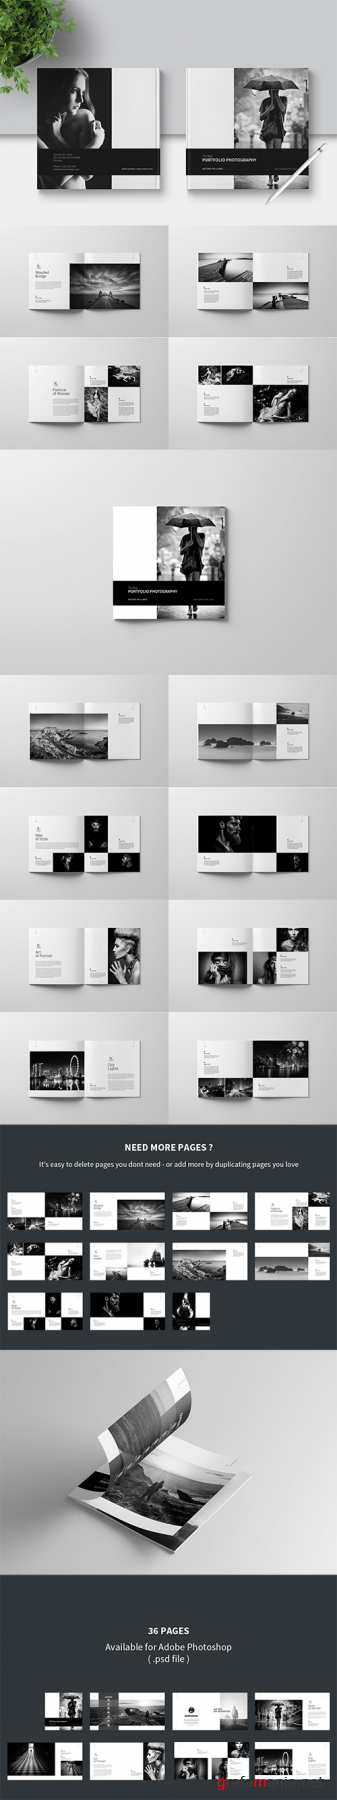 PSD - Photo Album Template